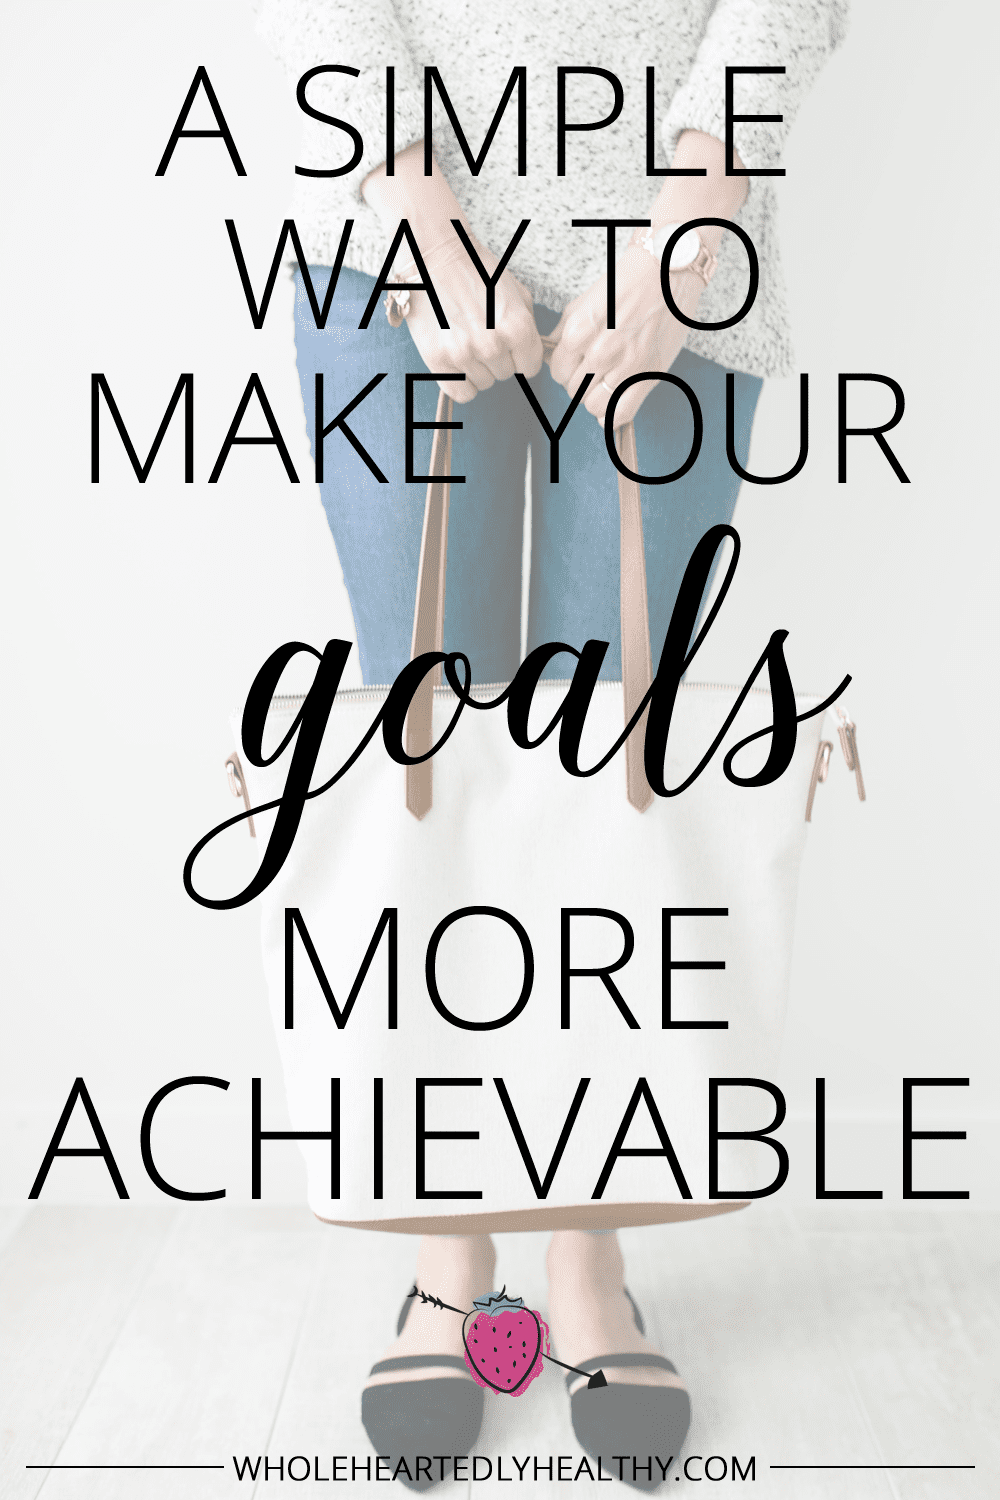 A simple way to make your goals more achievable